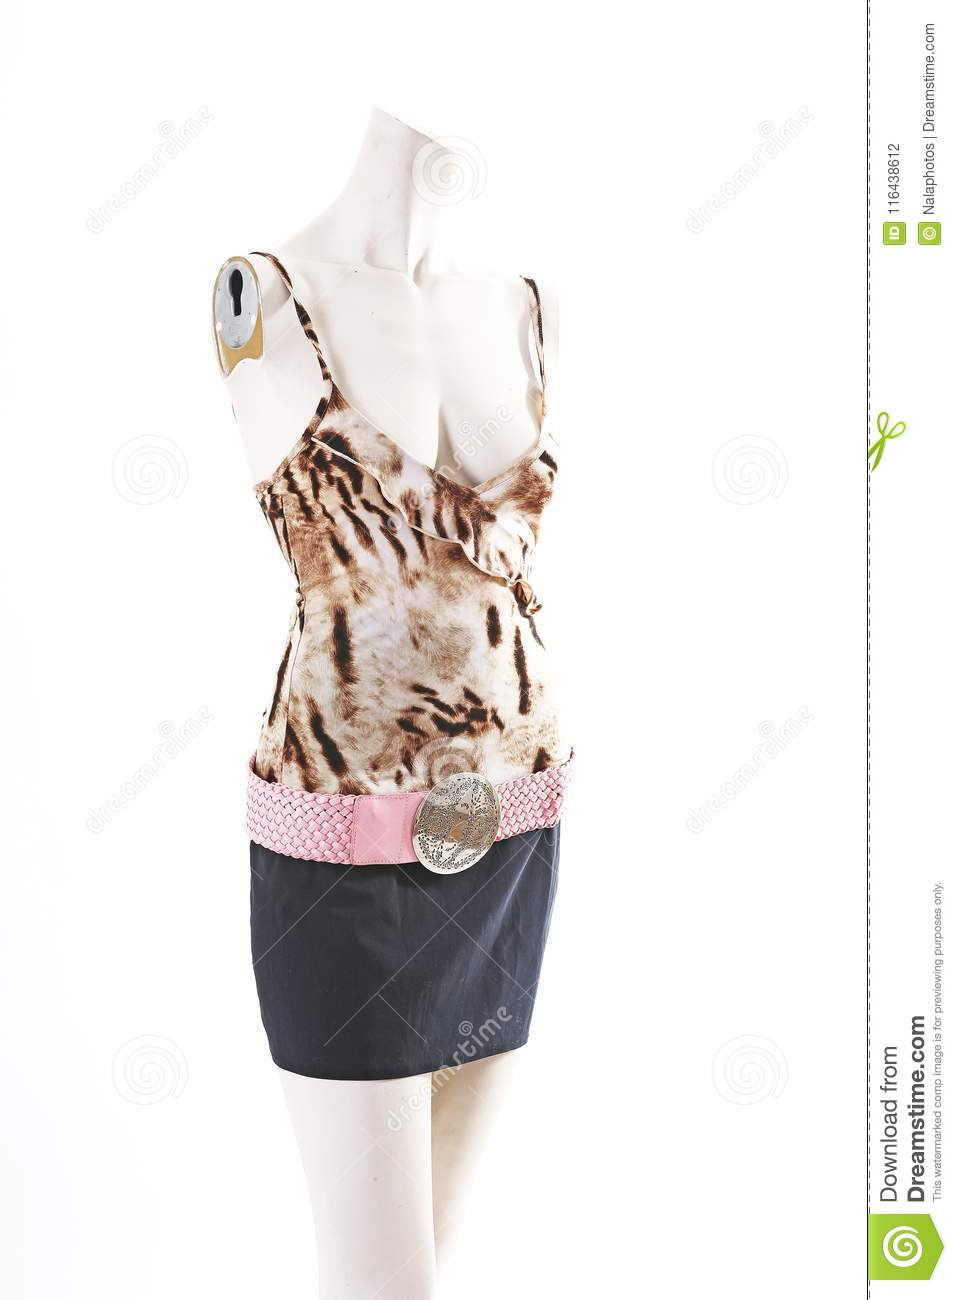 Animal pattern top black skirt on mannequin full body shop display. Woman fashion styles, clothes on white studio background.